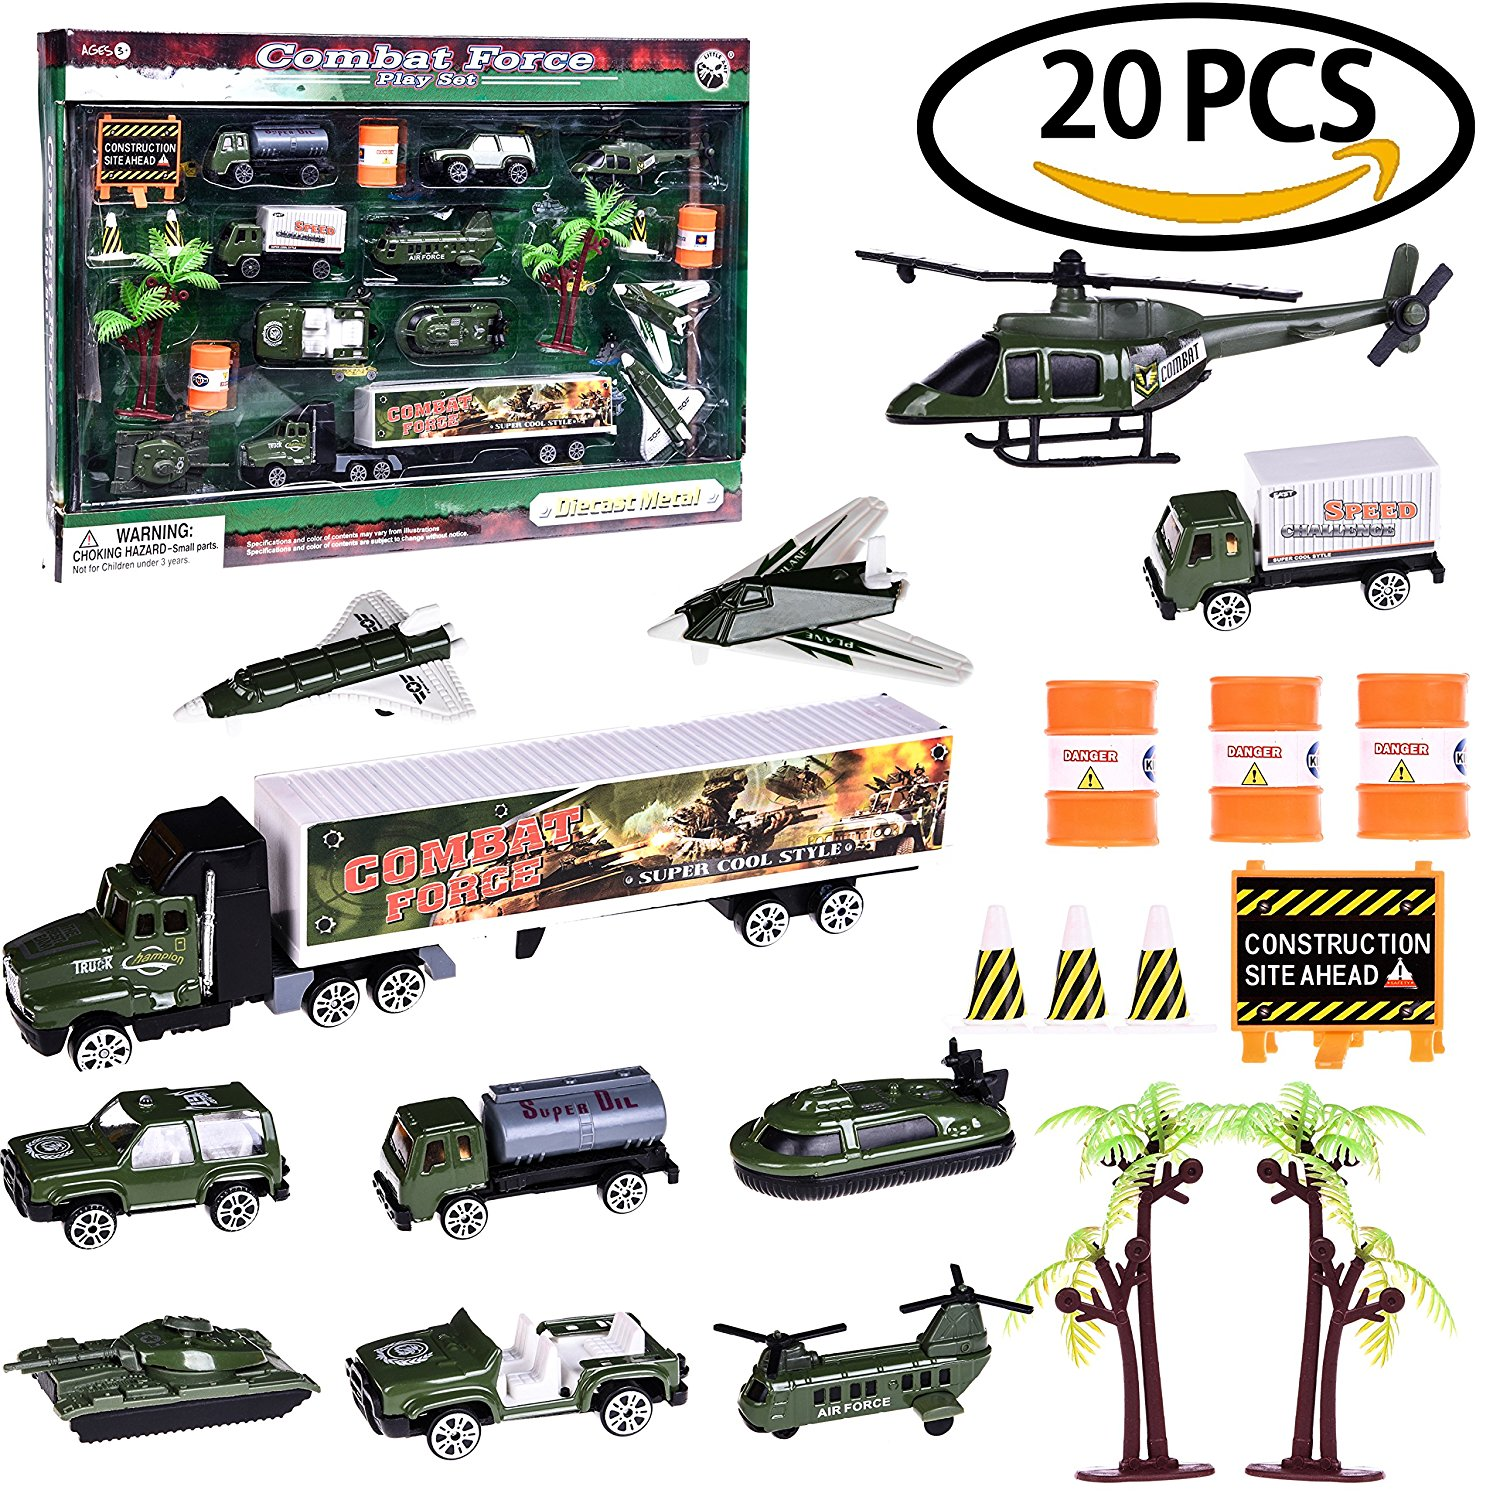 Boy's Army Man Military Soldiers Truck Hero Role Play Action Diecast Vehicle Play Set for Party Favors with Tank, Truck, SUV, Helicopter, Plane and Accessories 20 PCs F-21